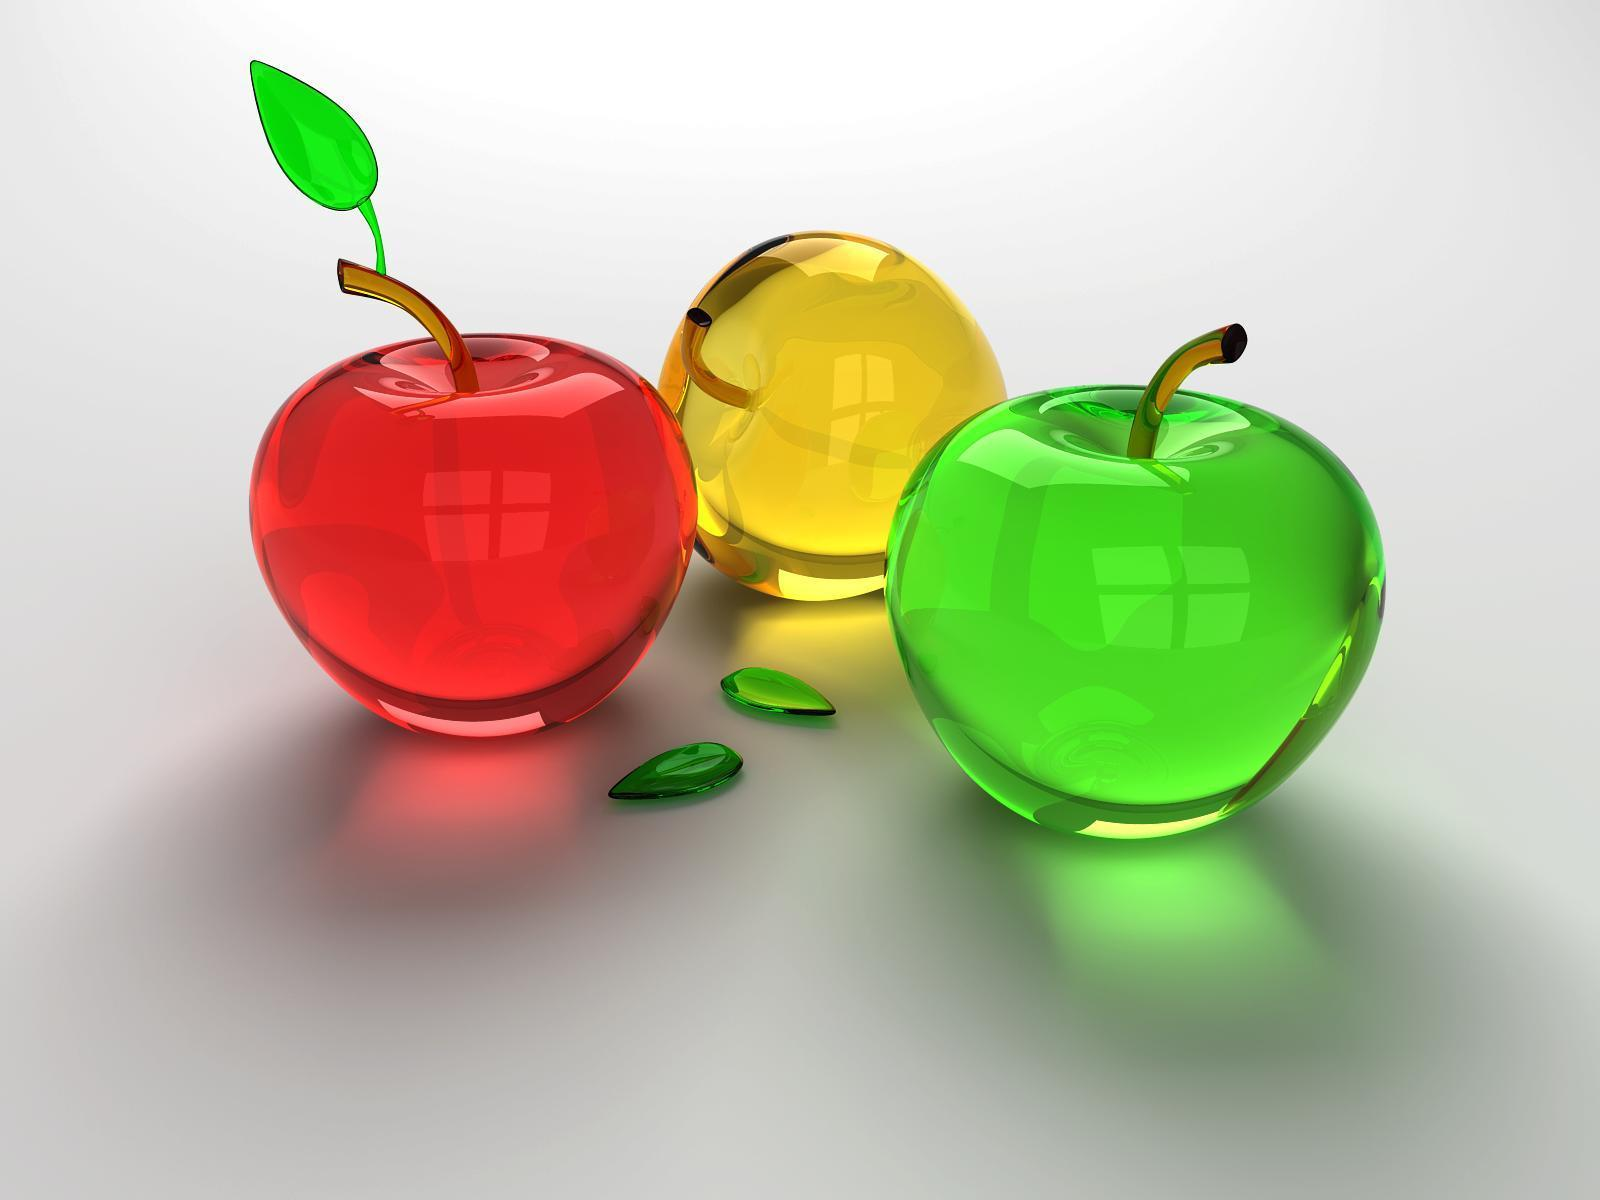 http://2.bp.blogspot.com/--ak1eq5Pdig/UK4IC4gsd4I/AAAAAAAAiNs/eVDFzdOt-q0/s1600/3d+Amazing+Glass-Apples-Wallpaper-fruit.jpg